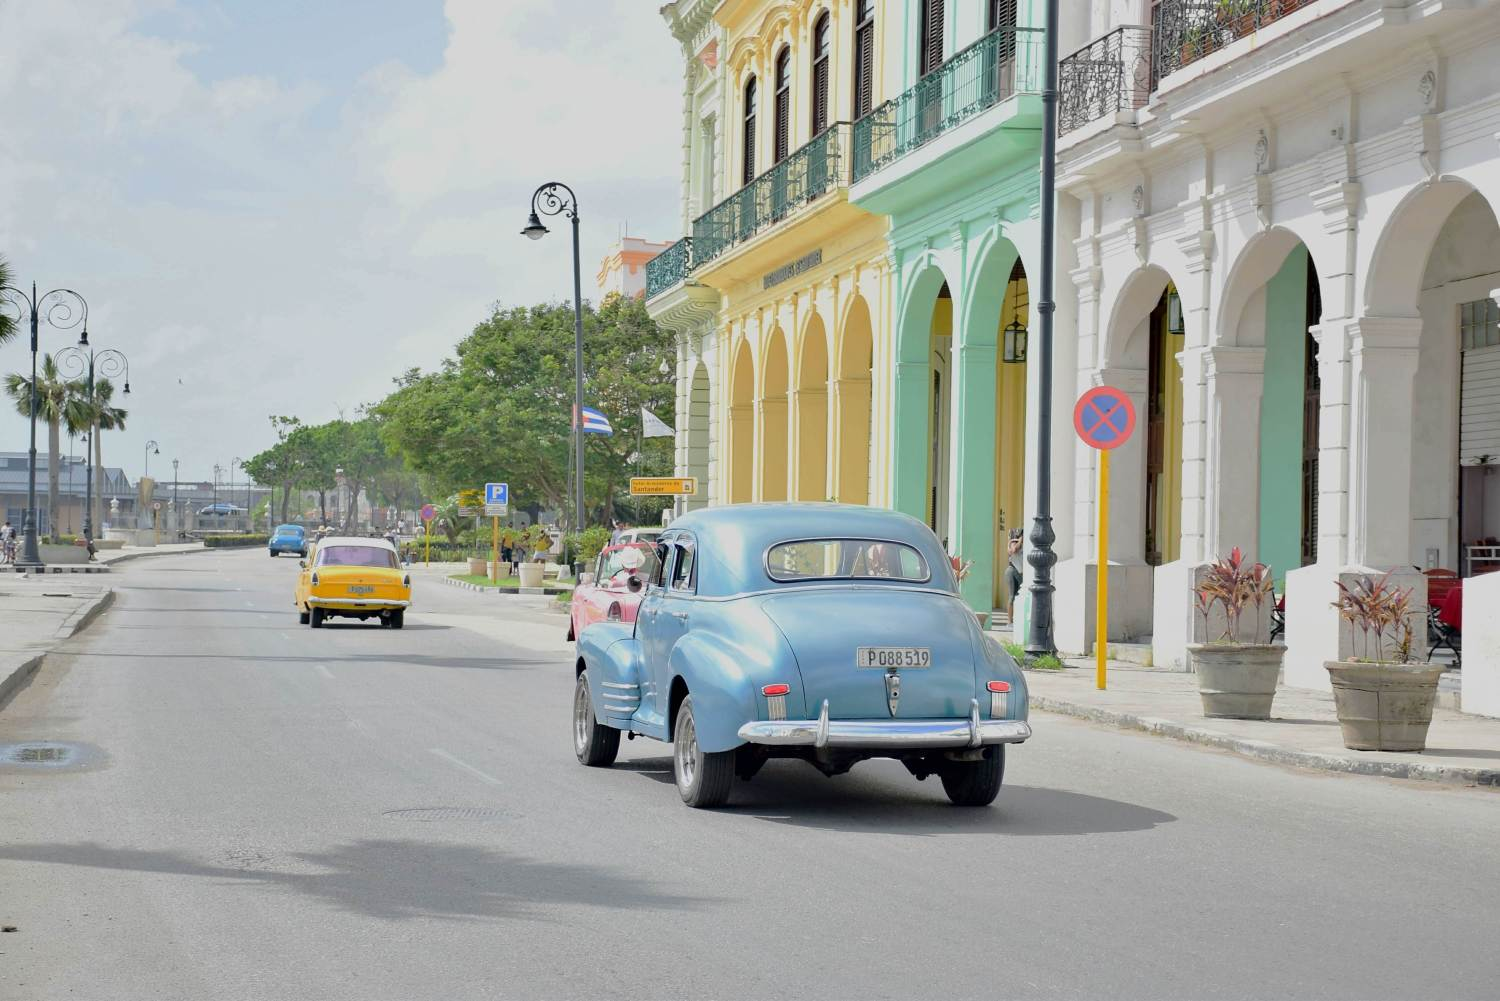 our adventures backpacking in Cuba